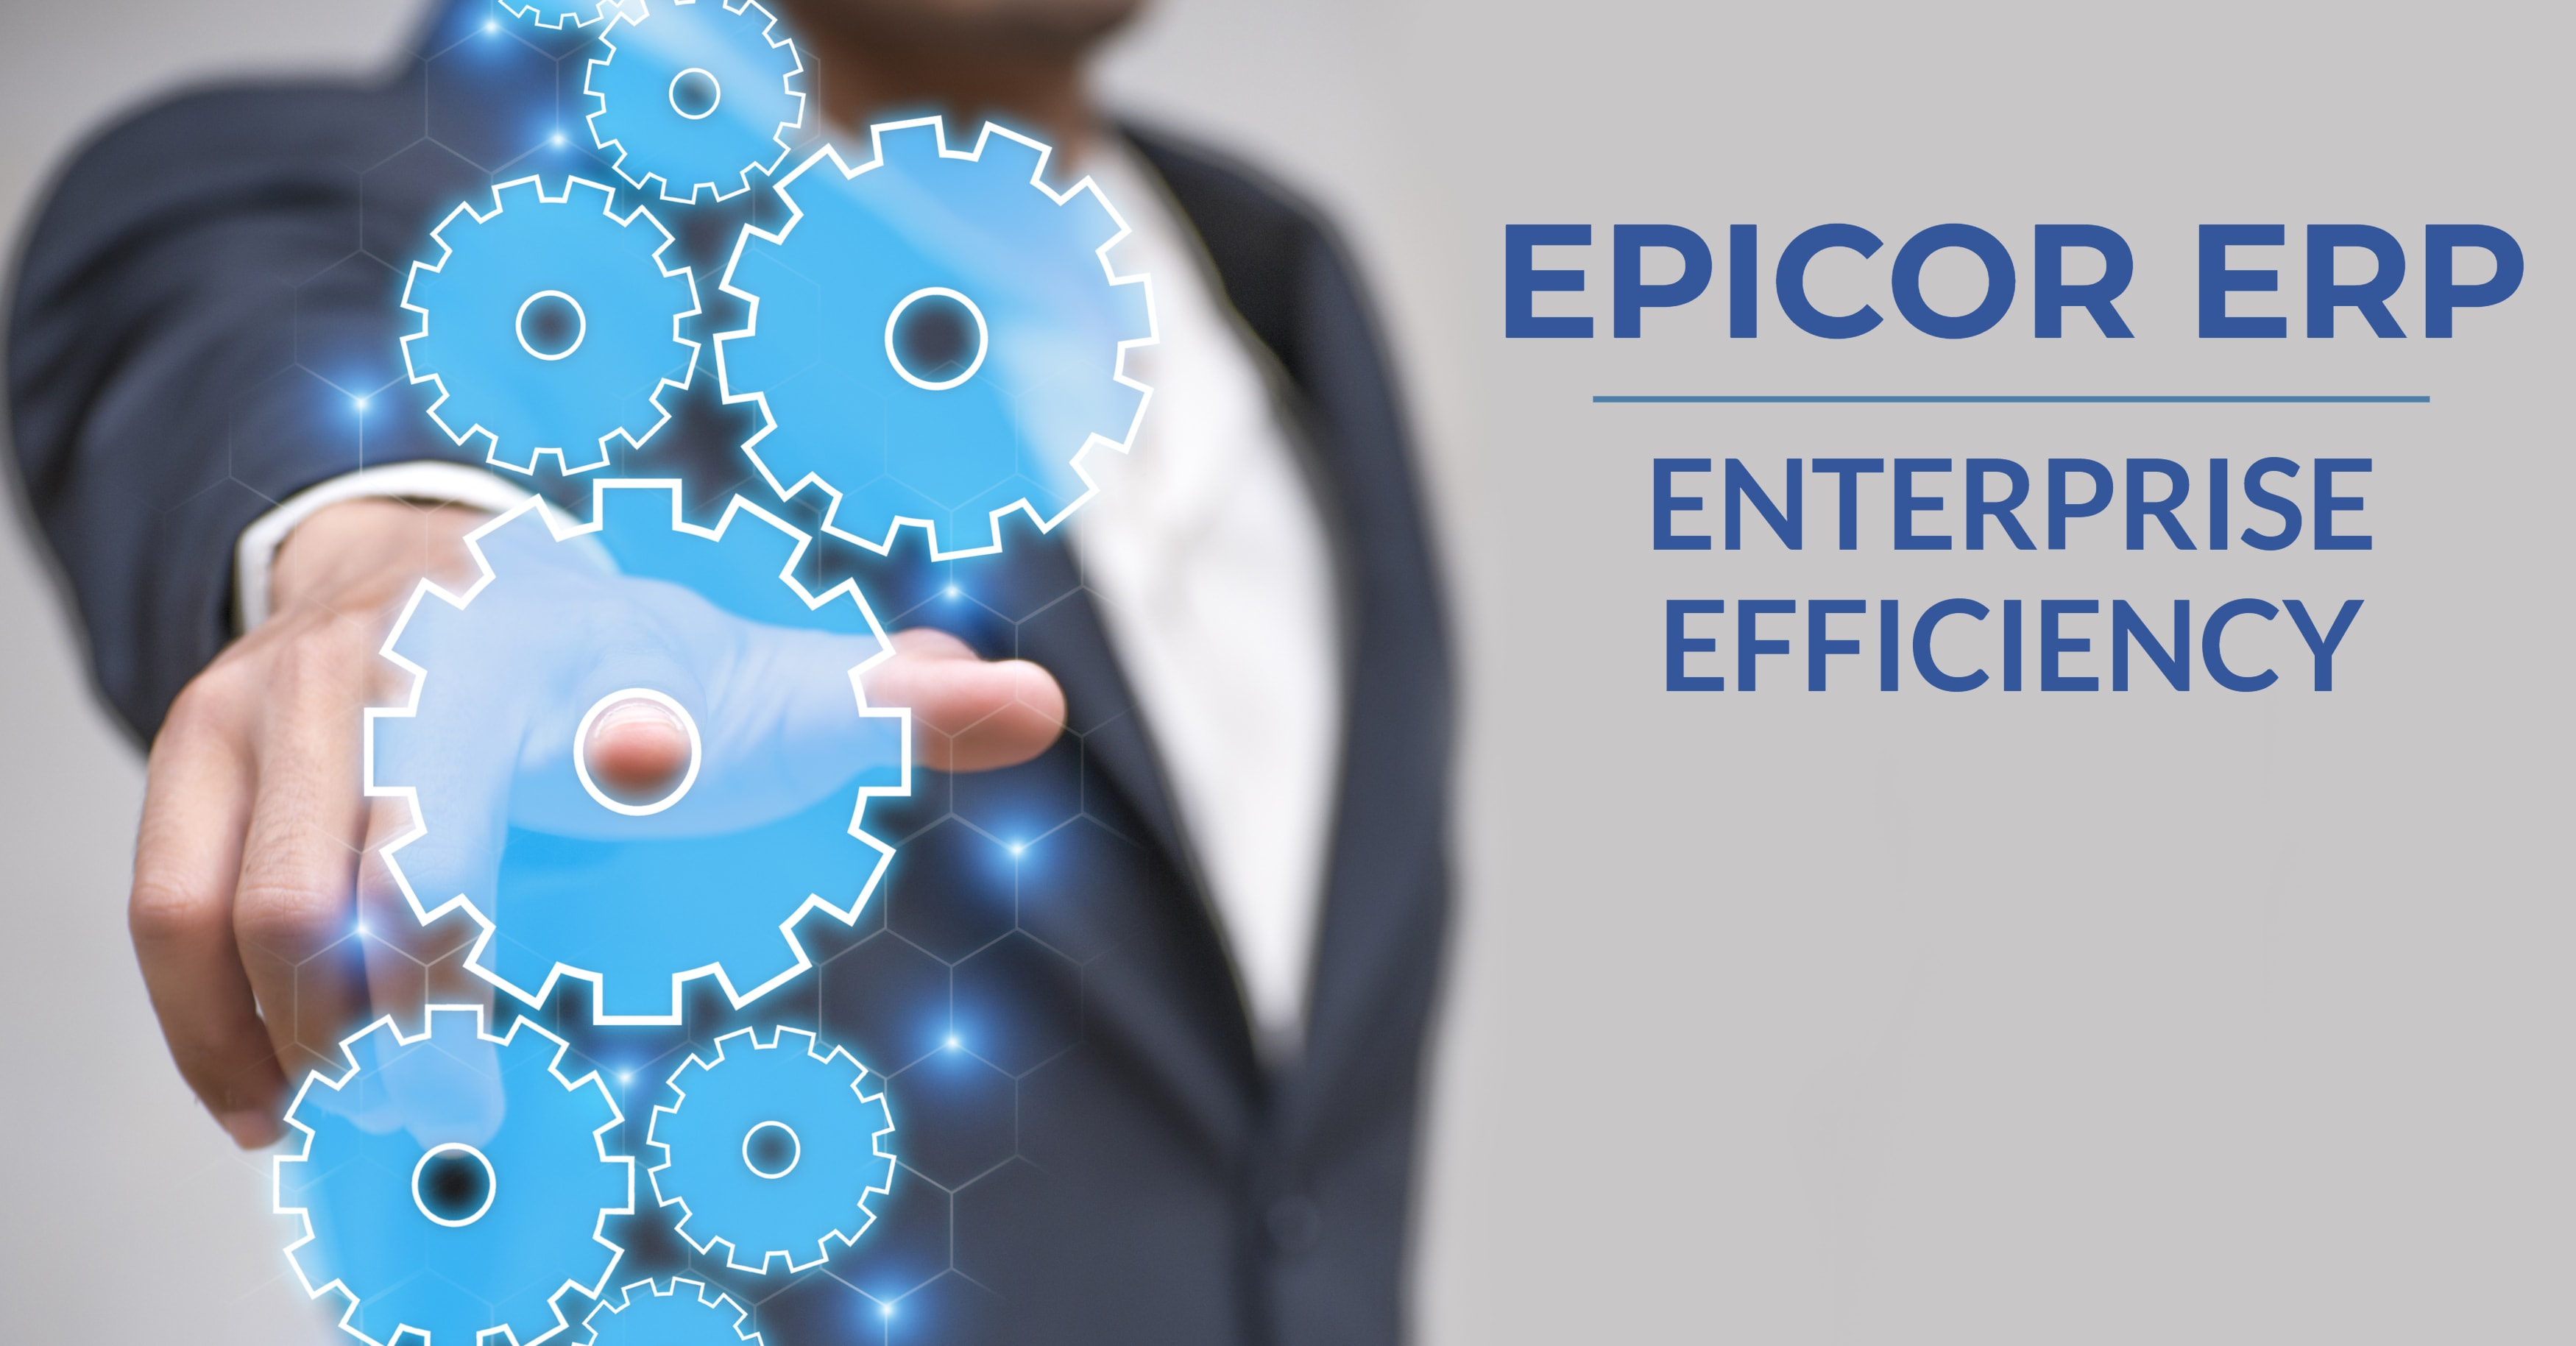 Epicor ERP Efficiency